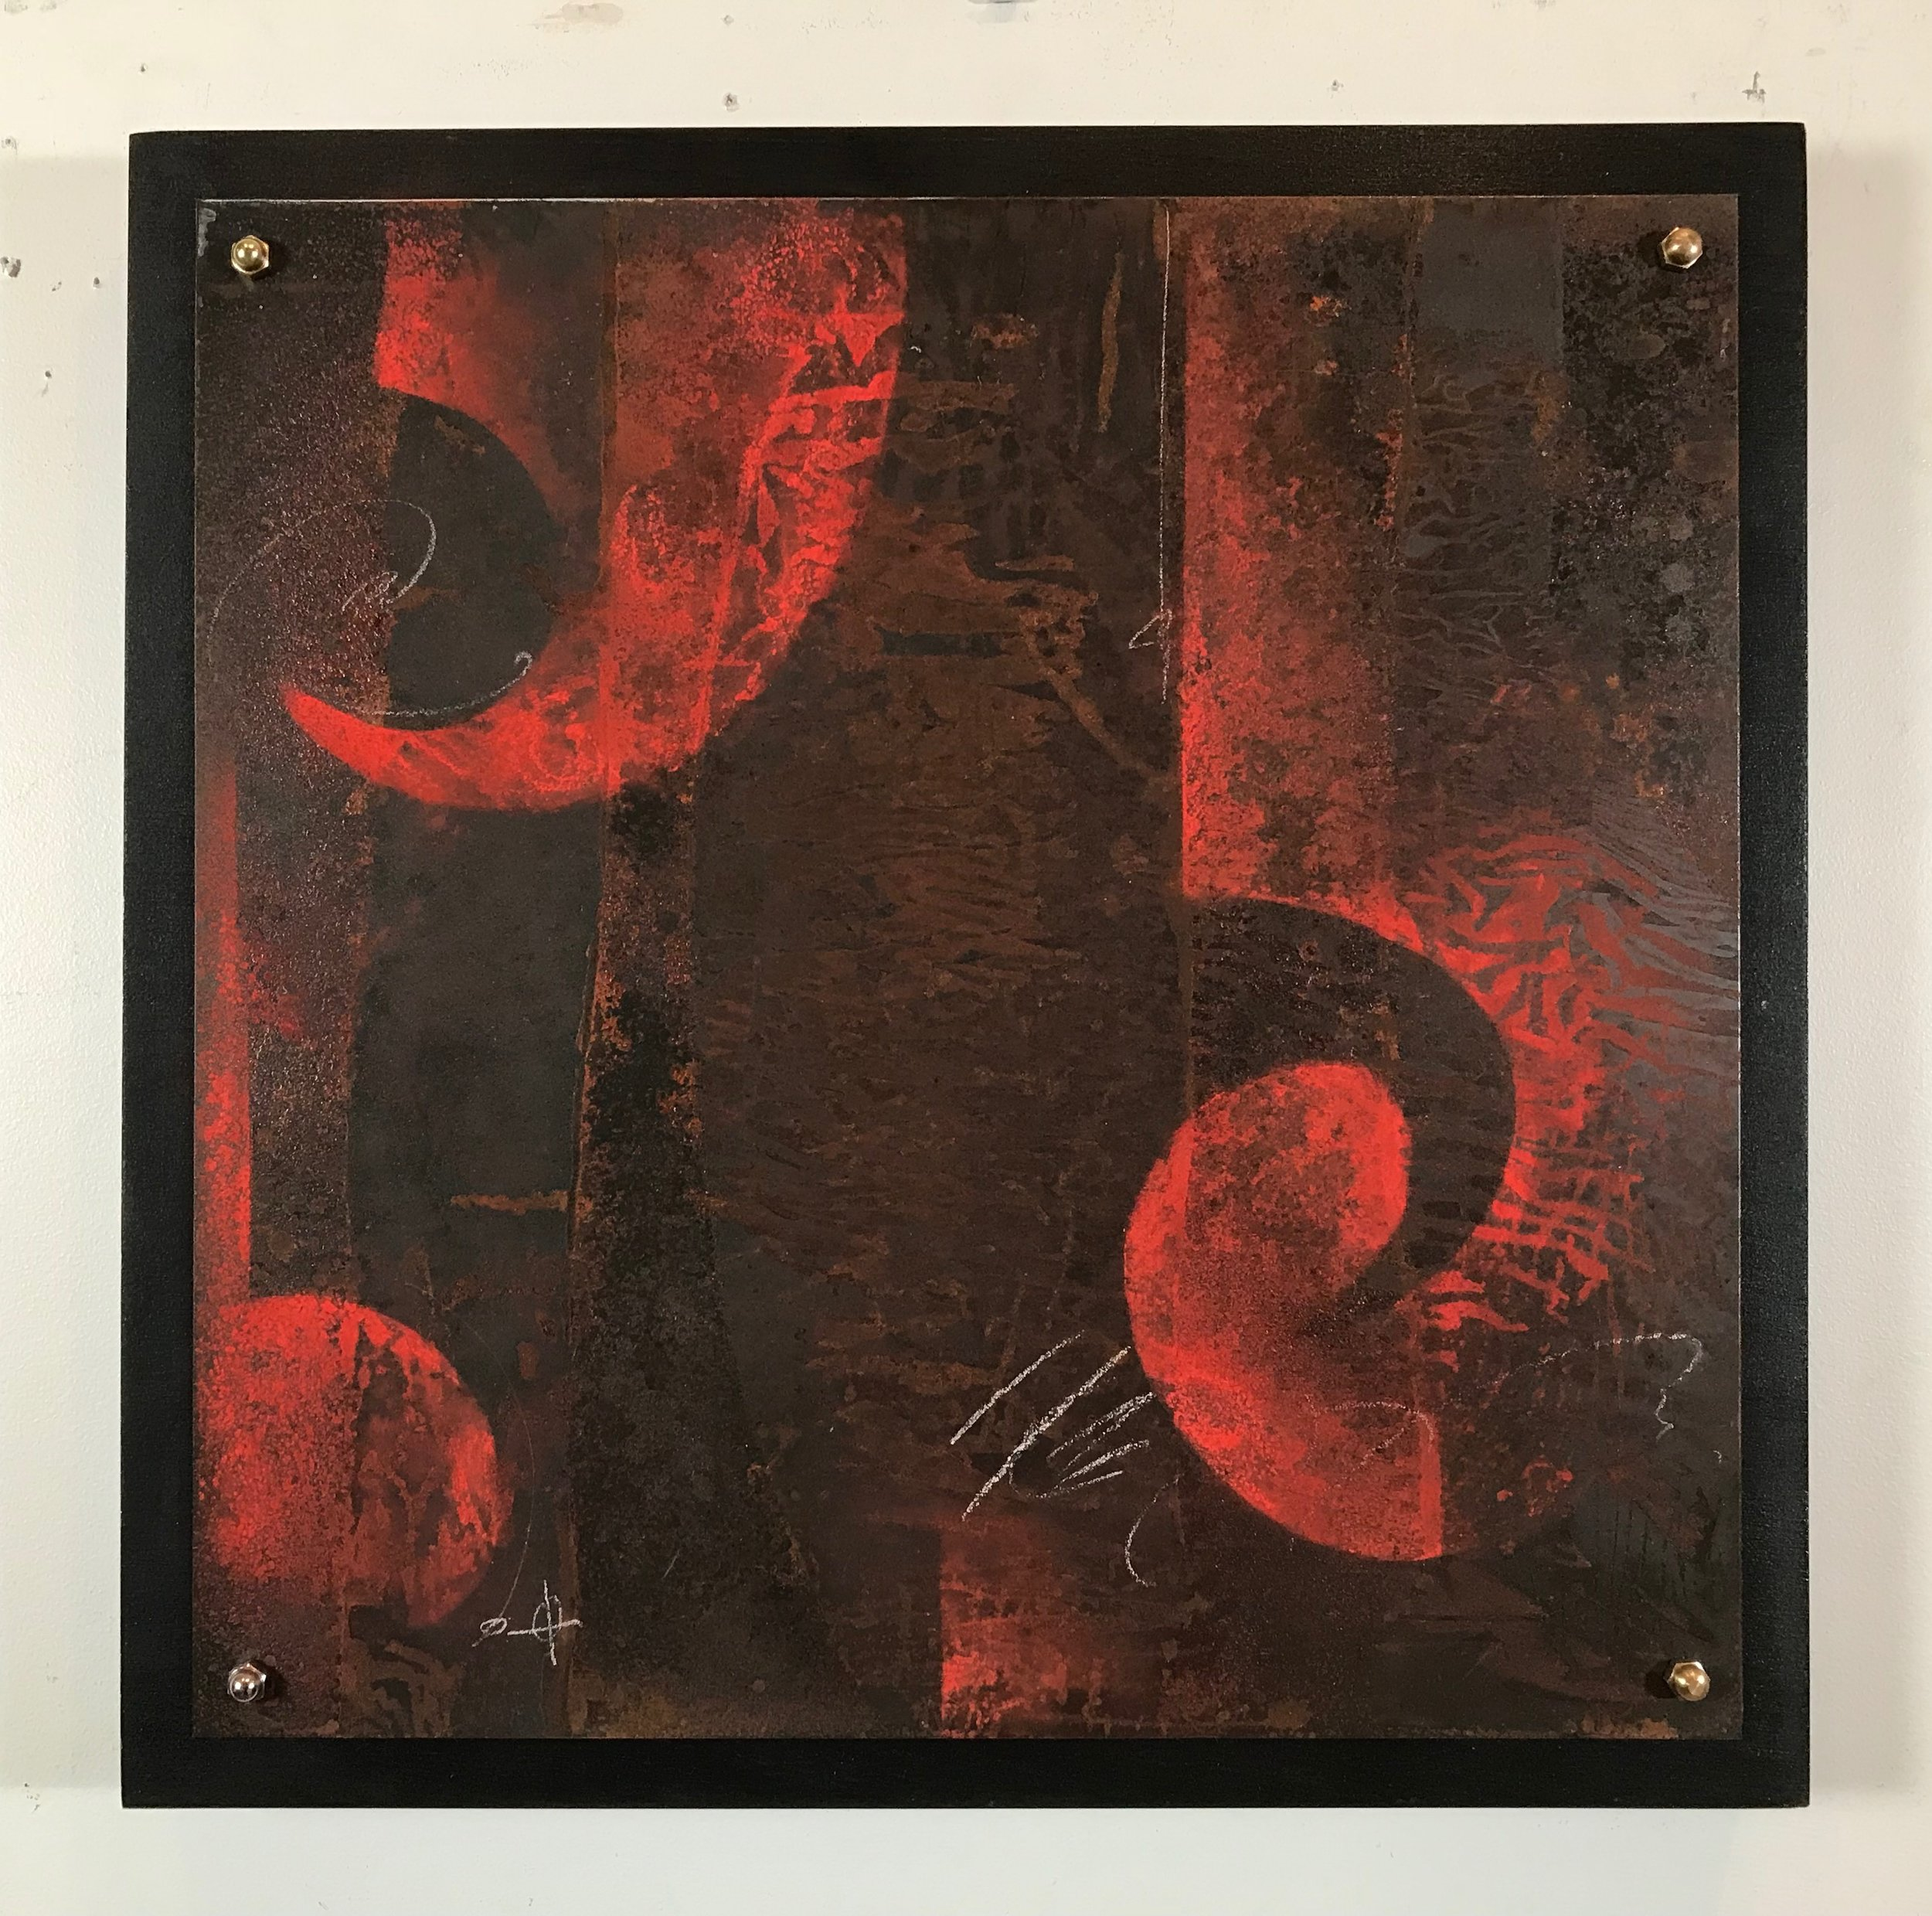 "FLAME WORK #1  /  20""  X 20"" X 1.75"" / Mixed Media and Steel"